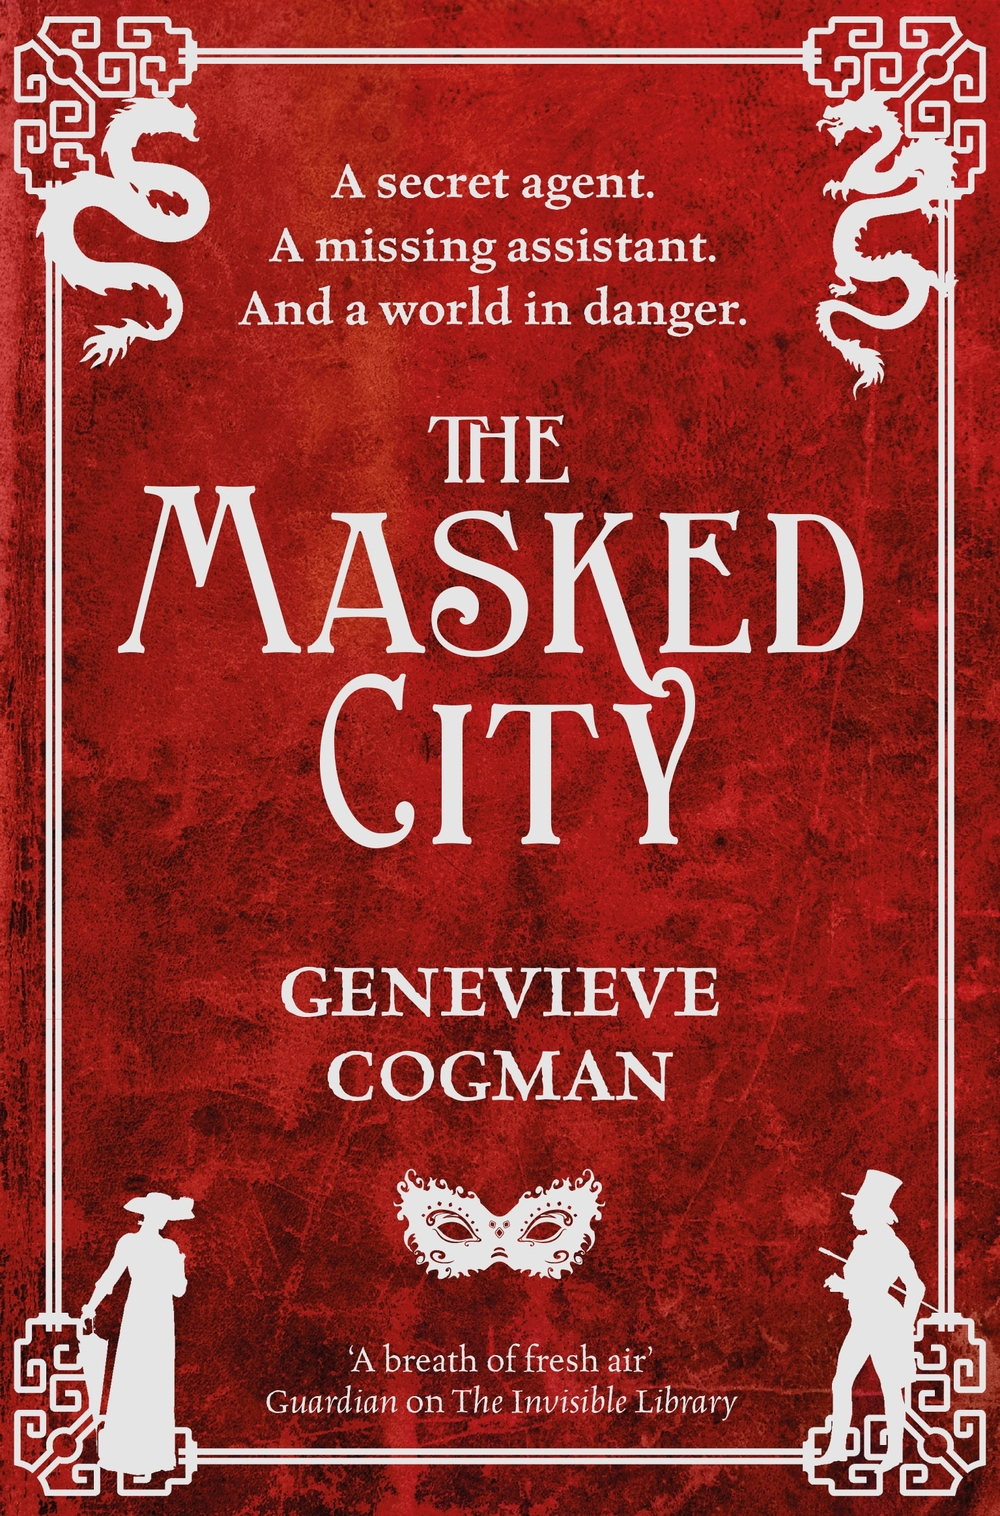 The Masked City.jpg